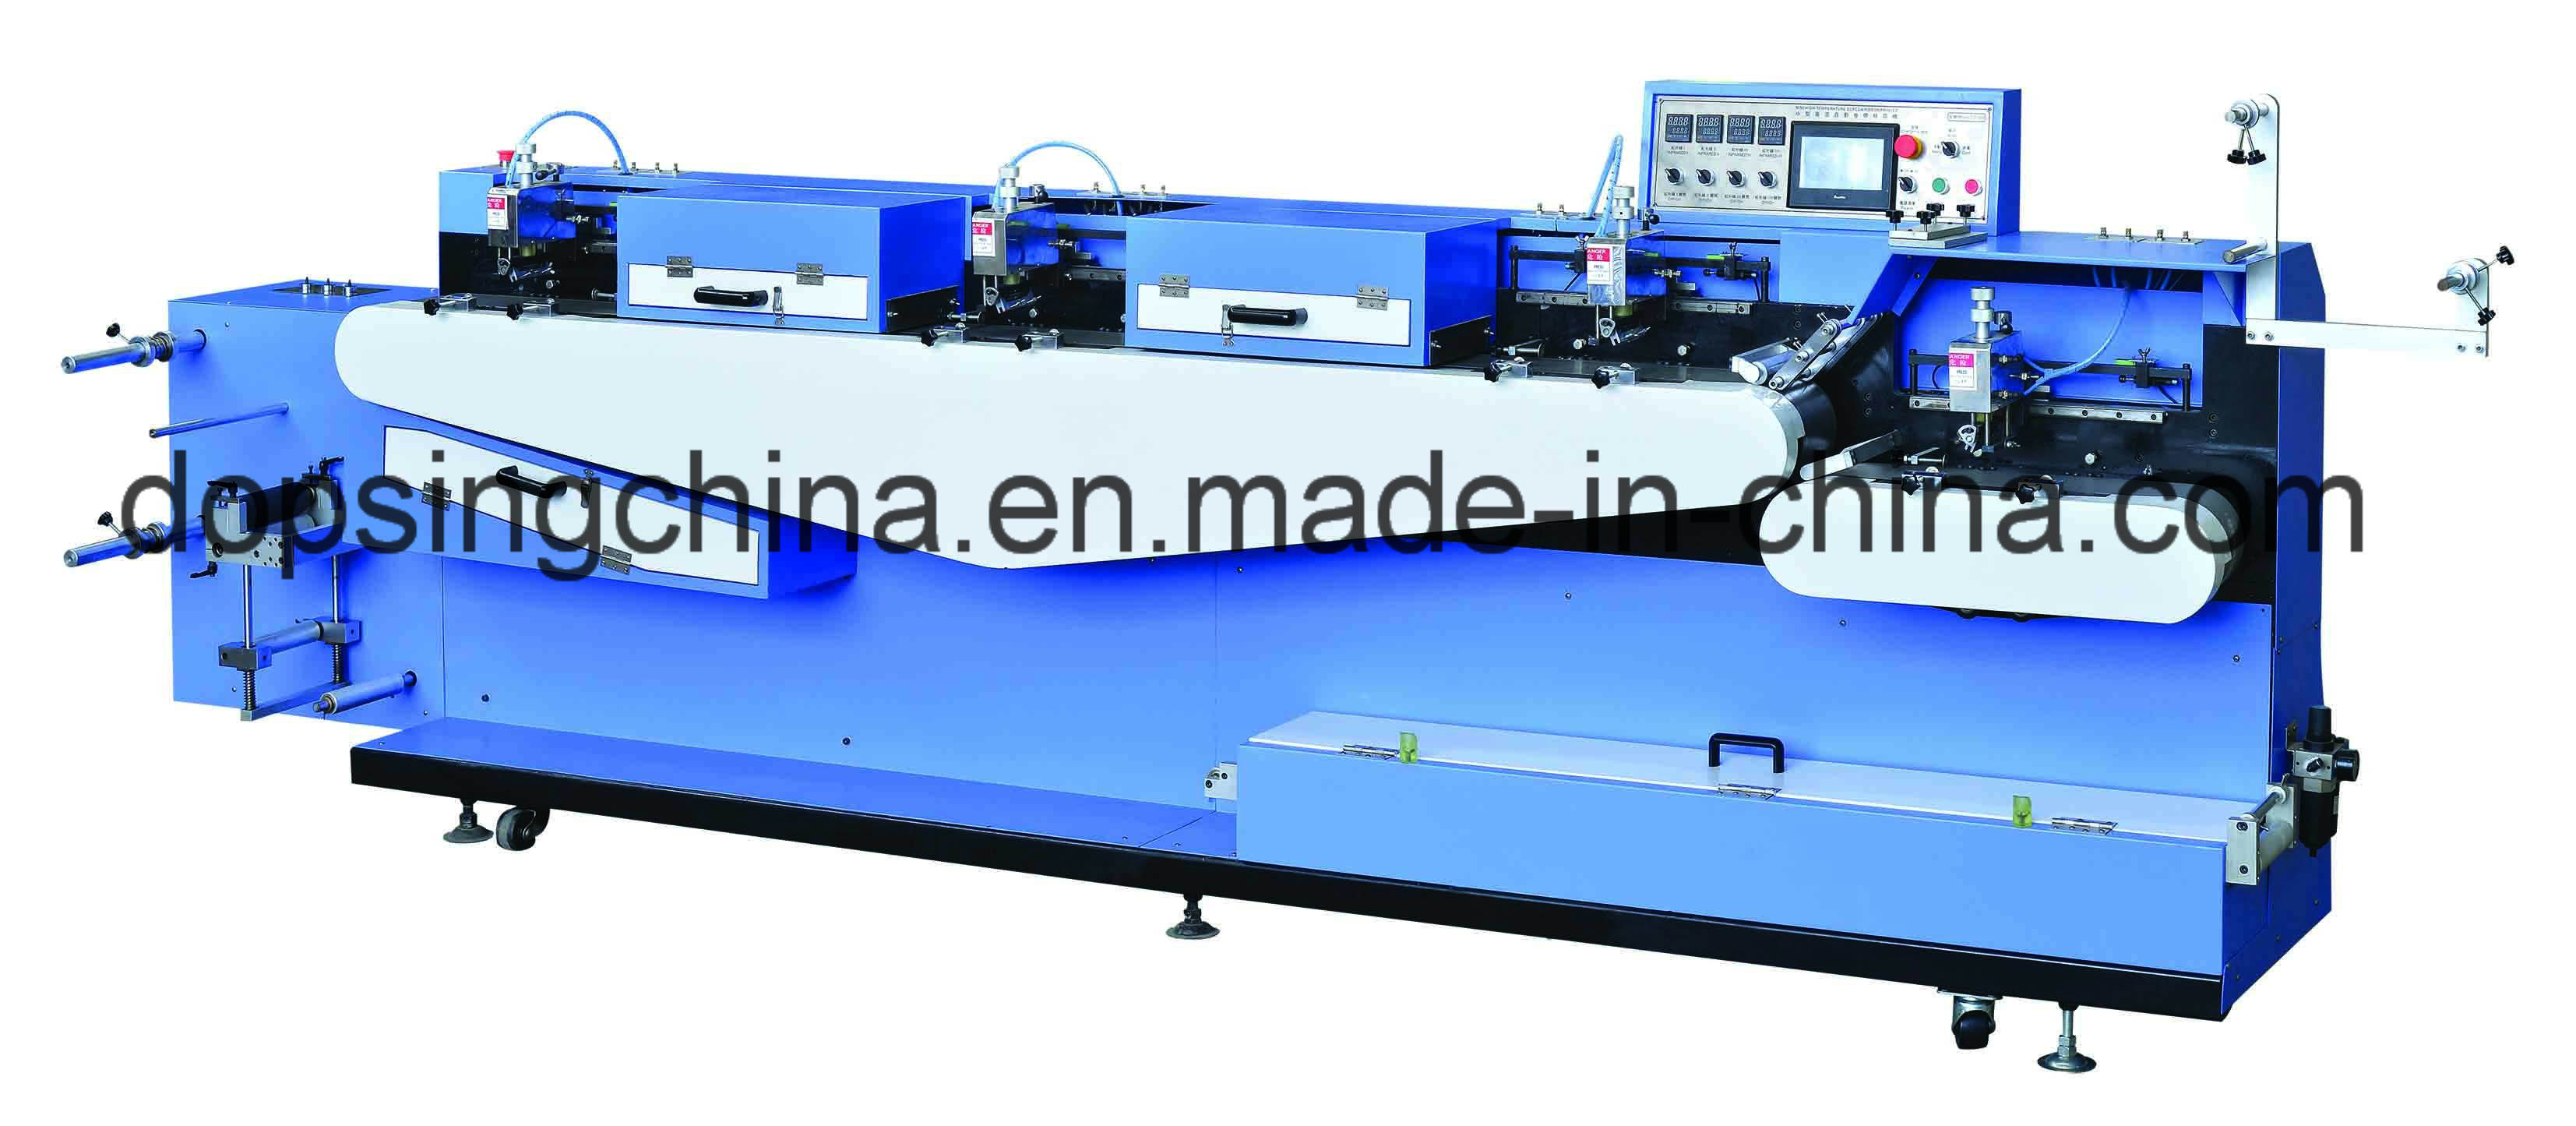 2017 New Style Single Tape Sample Dyeing Machine - High Temperature Inks Ribbon-Label Screen Printing Machine with Best Price – Kin Wah